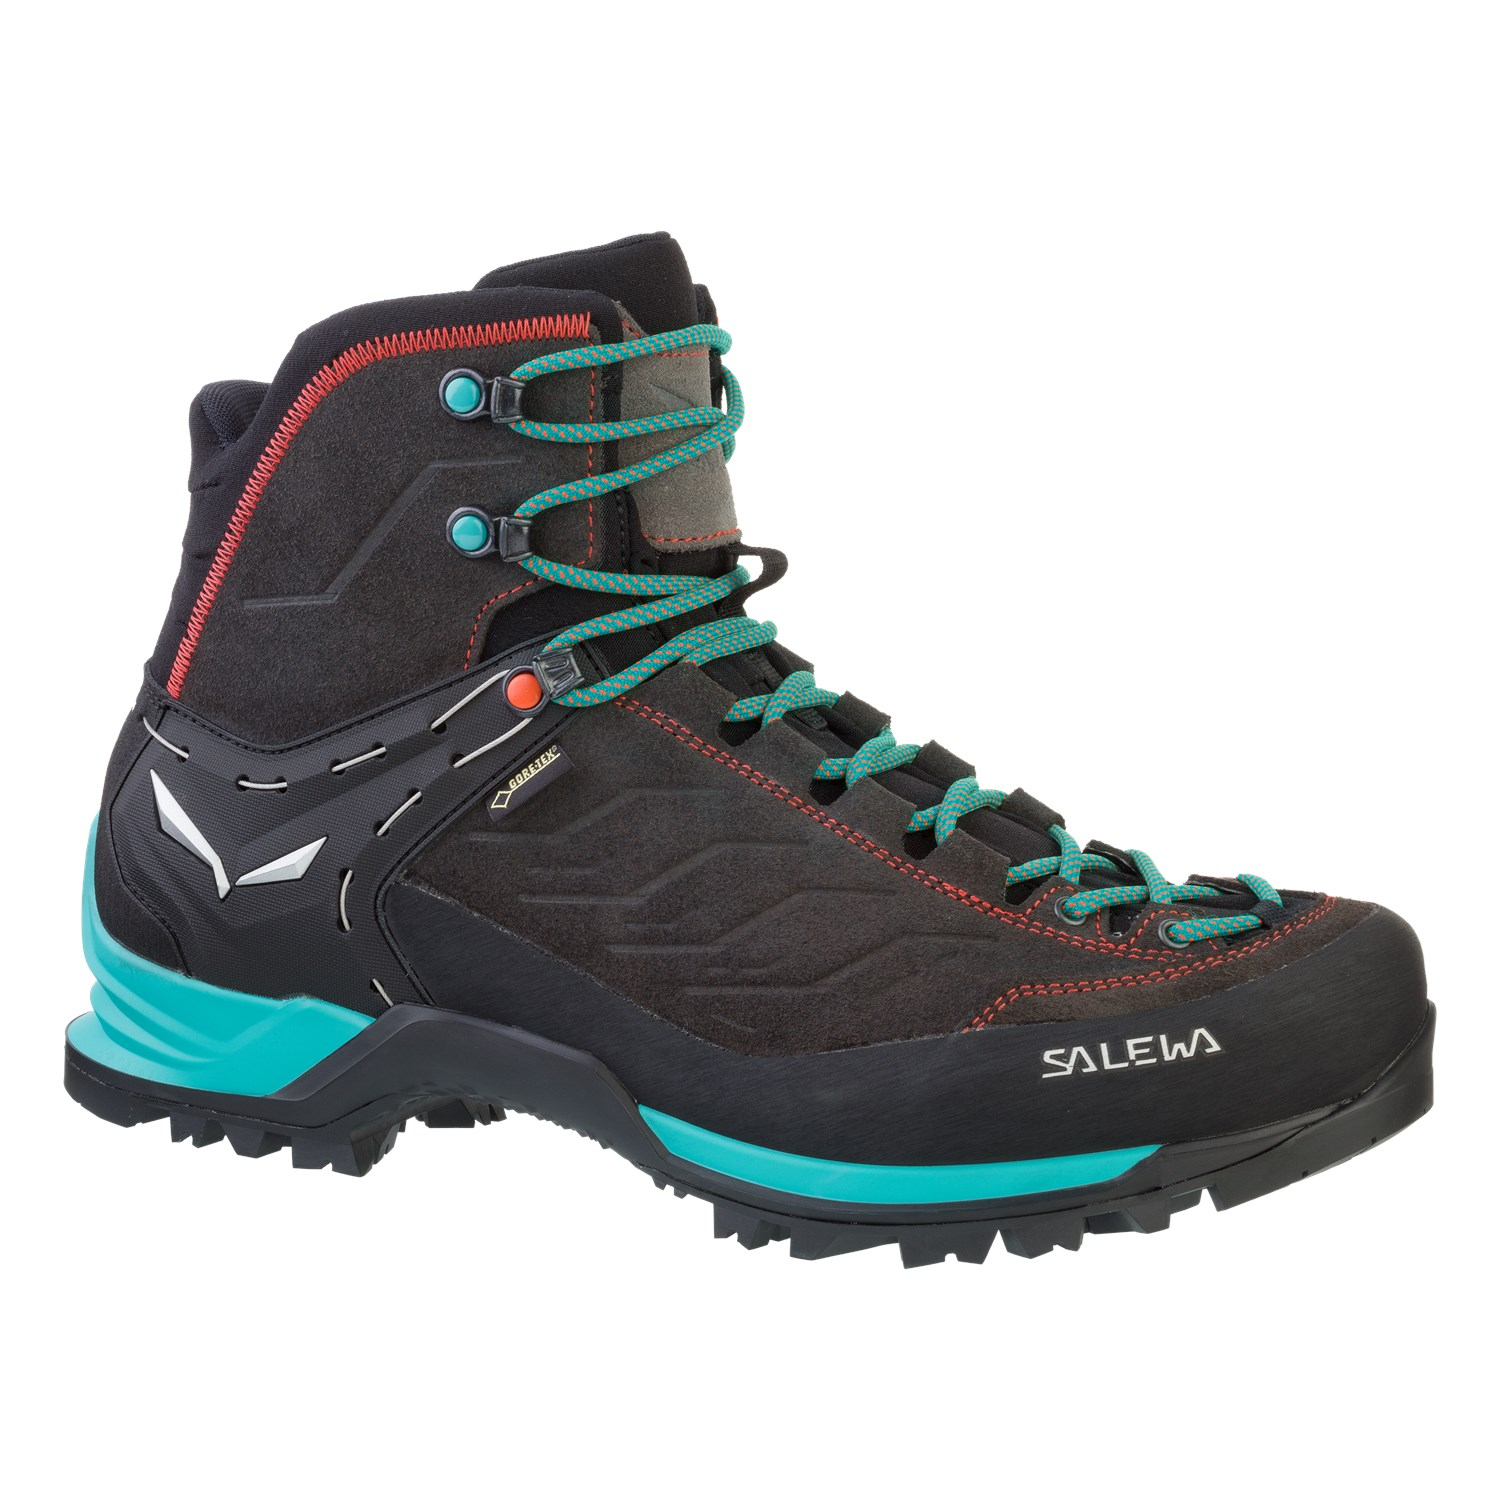 Salewa Boots | Hiking Shoes & Boots for Men and Women by